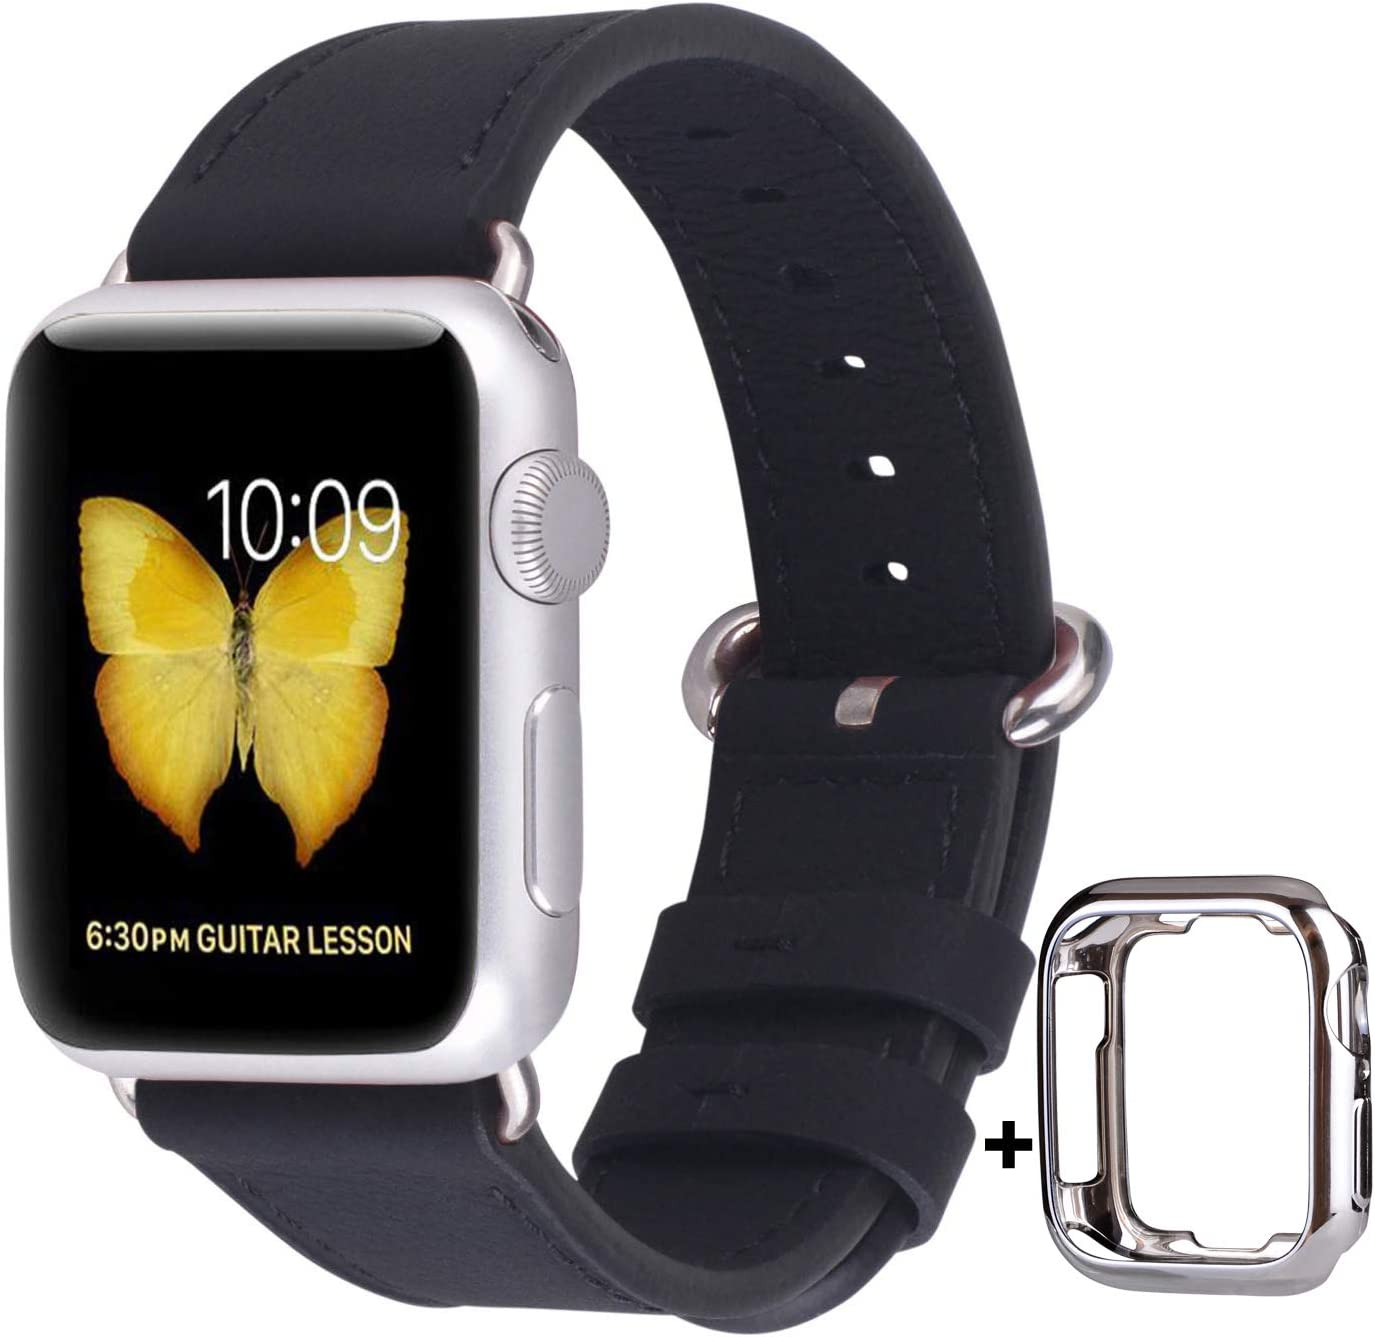 JSGJMY Compatible with Apple Watch Band 38mm 40mm 42mm 44mm Women Men Genuine Leather Replacement Strap for iWatch Series SE 6 5 4 3 2 1 (Black with Silver Stainless Steel Clasp, 38mm/40mm S/M)